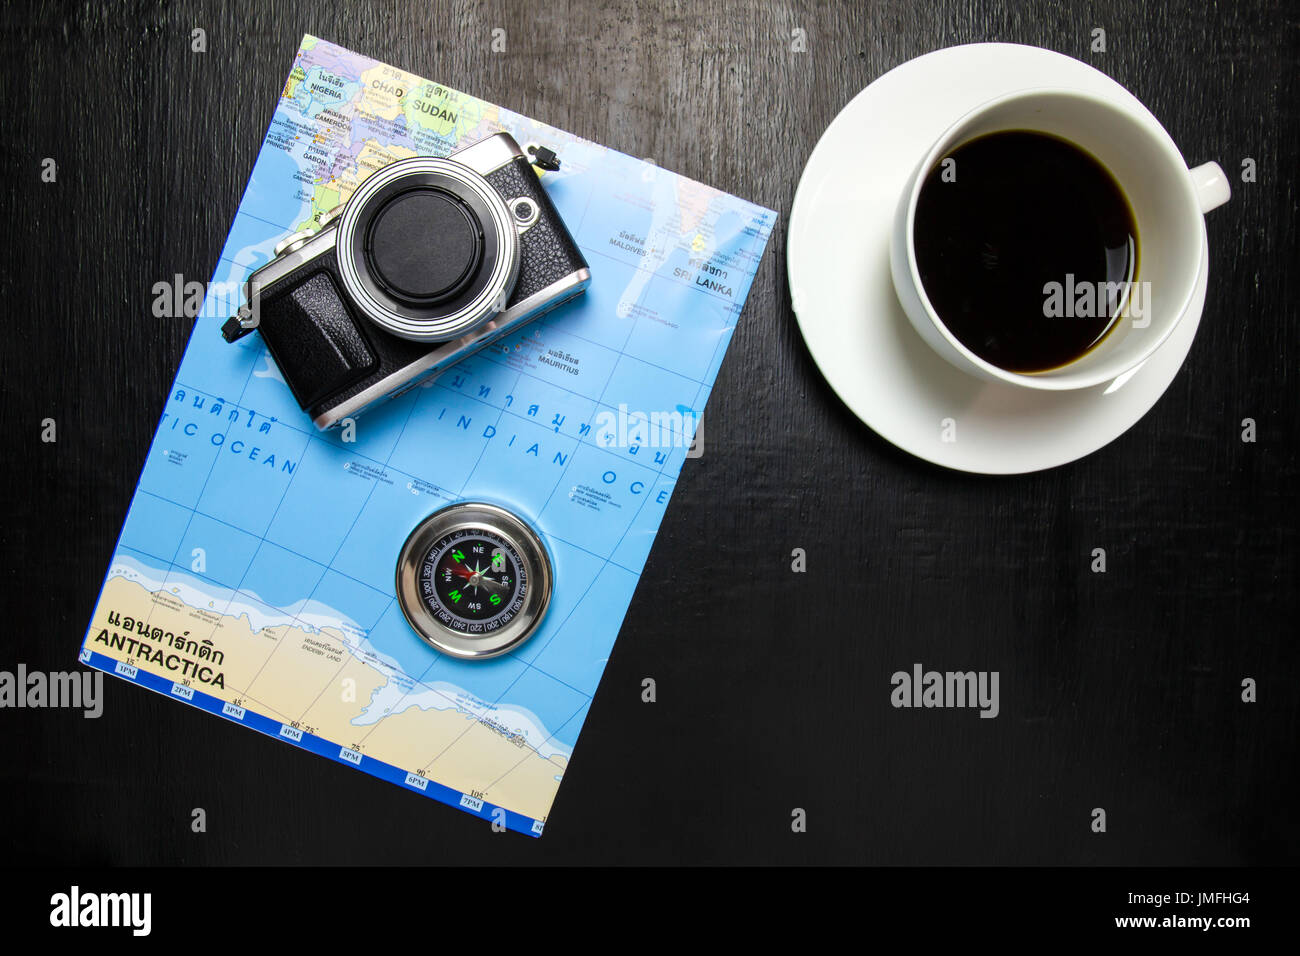 Top view of office desk workspace with coffee cup camera world map top view of office desk workspace with coffee cup camera world map compass on wooden background gumiabroncs Images